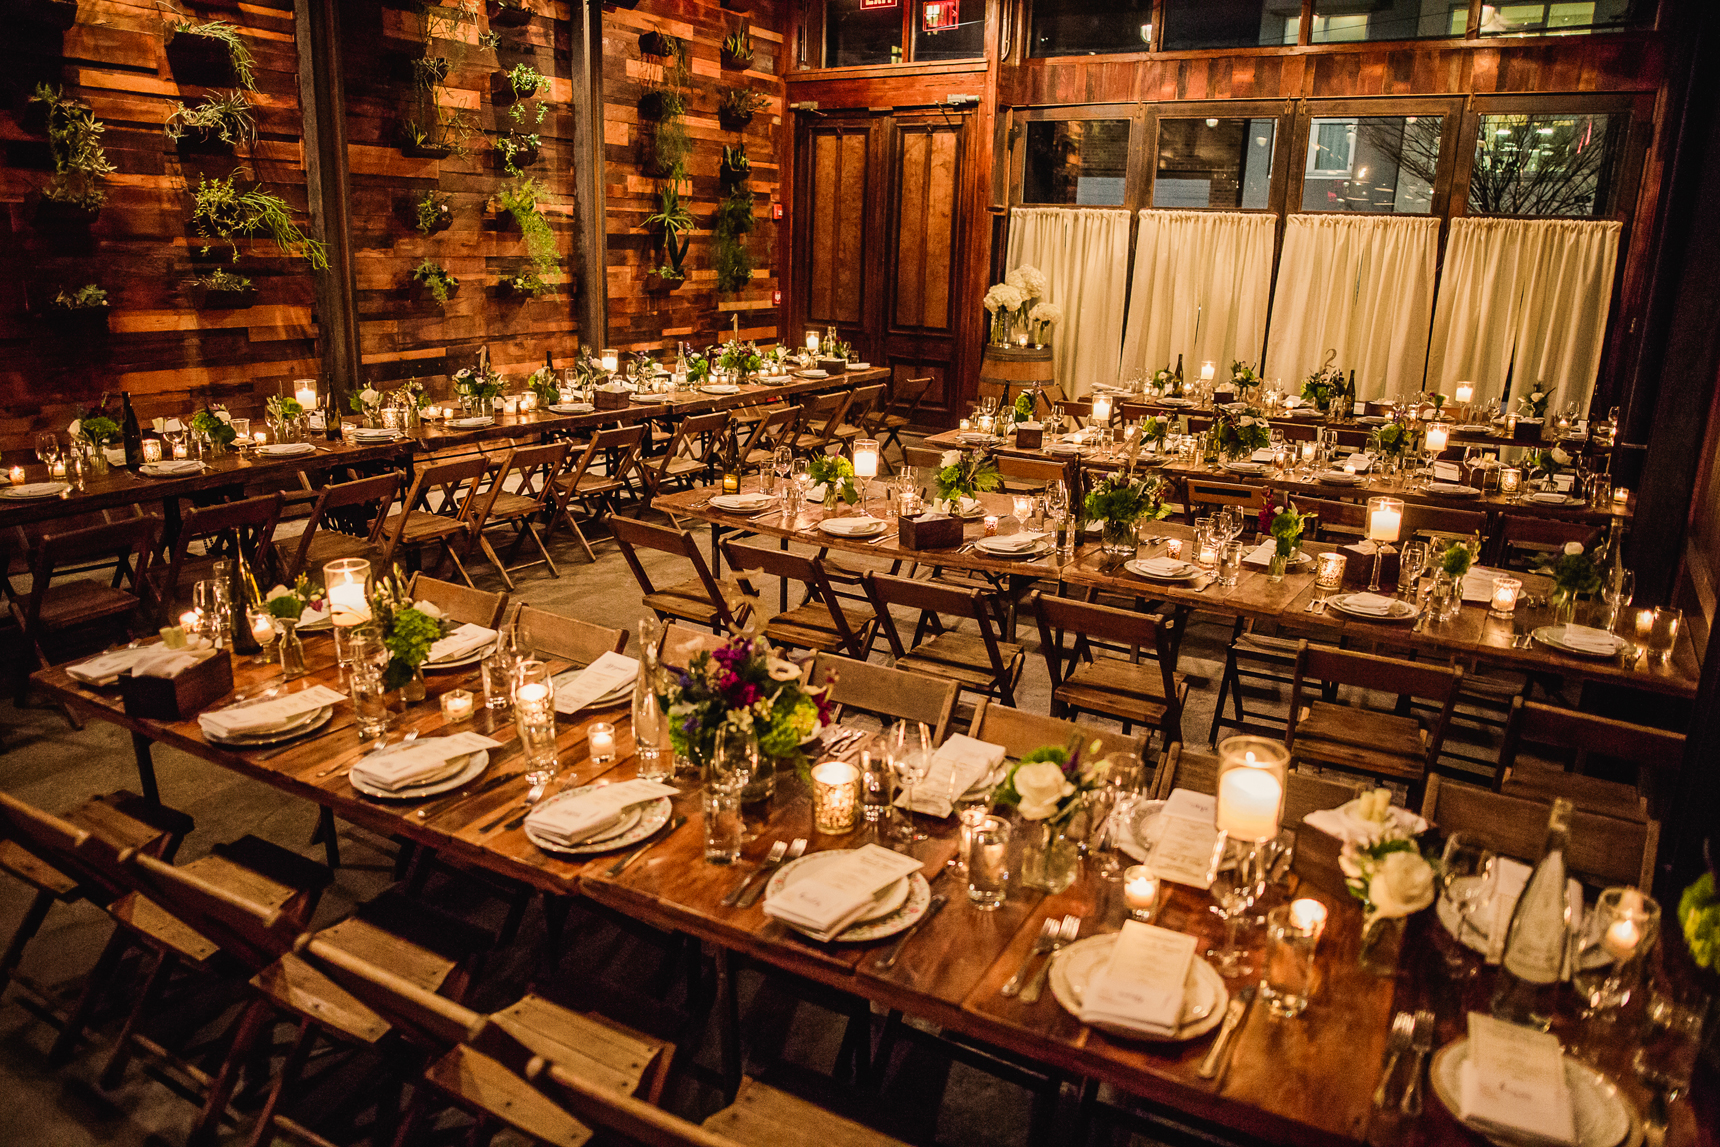 KP_BrooklynWinery_Wedding_NewYork_Photographer100.jpg